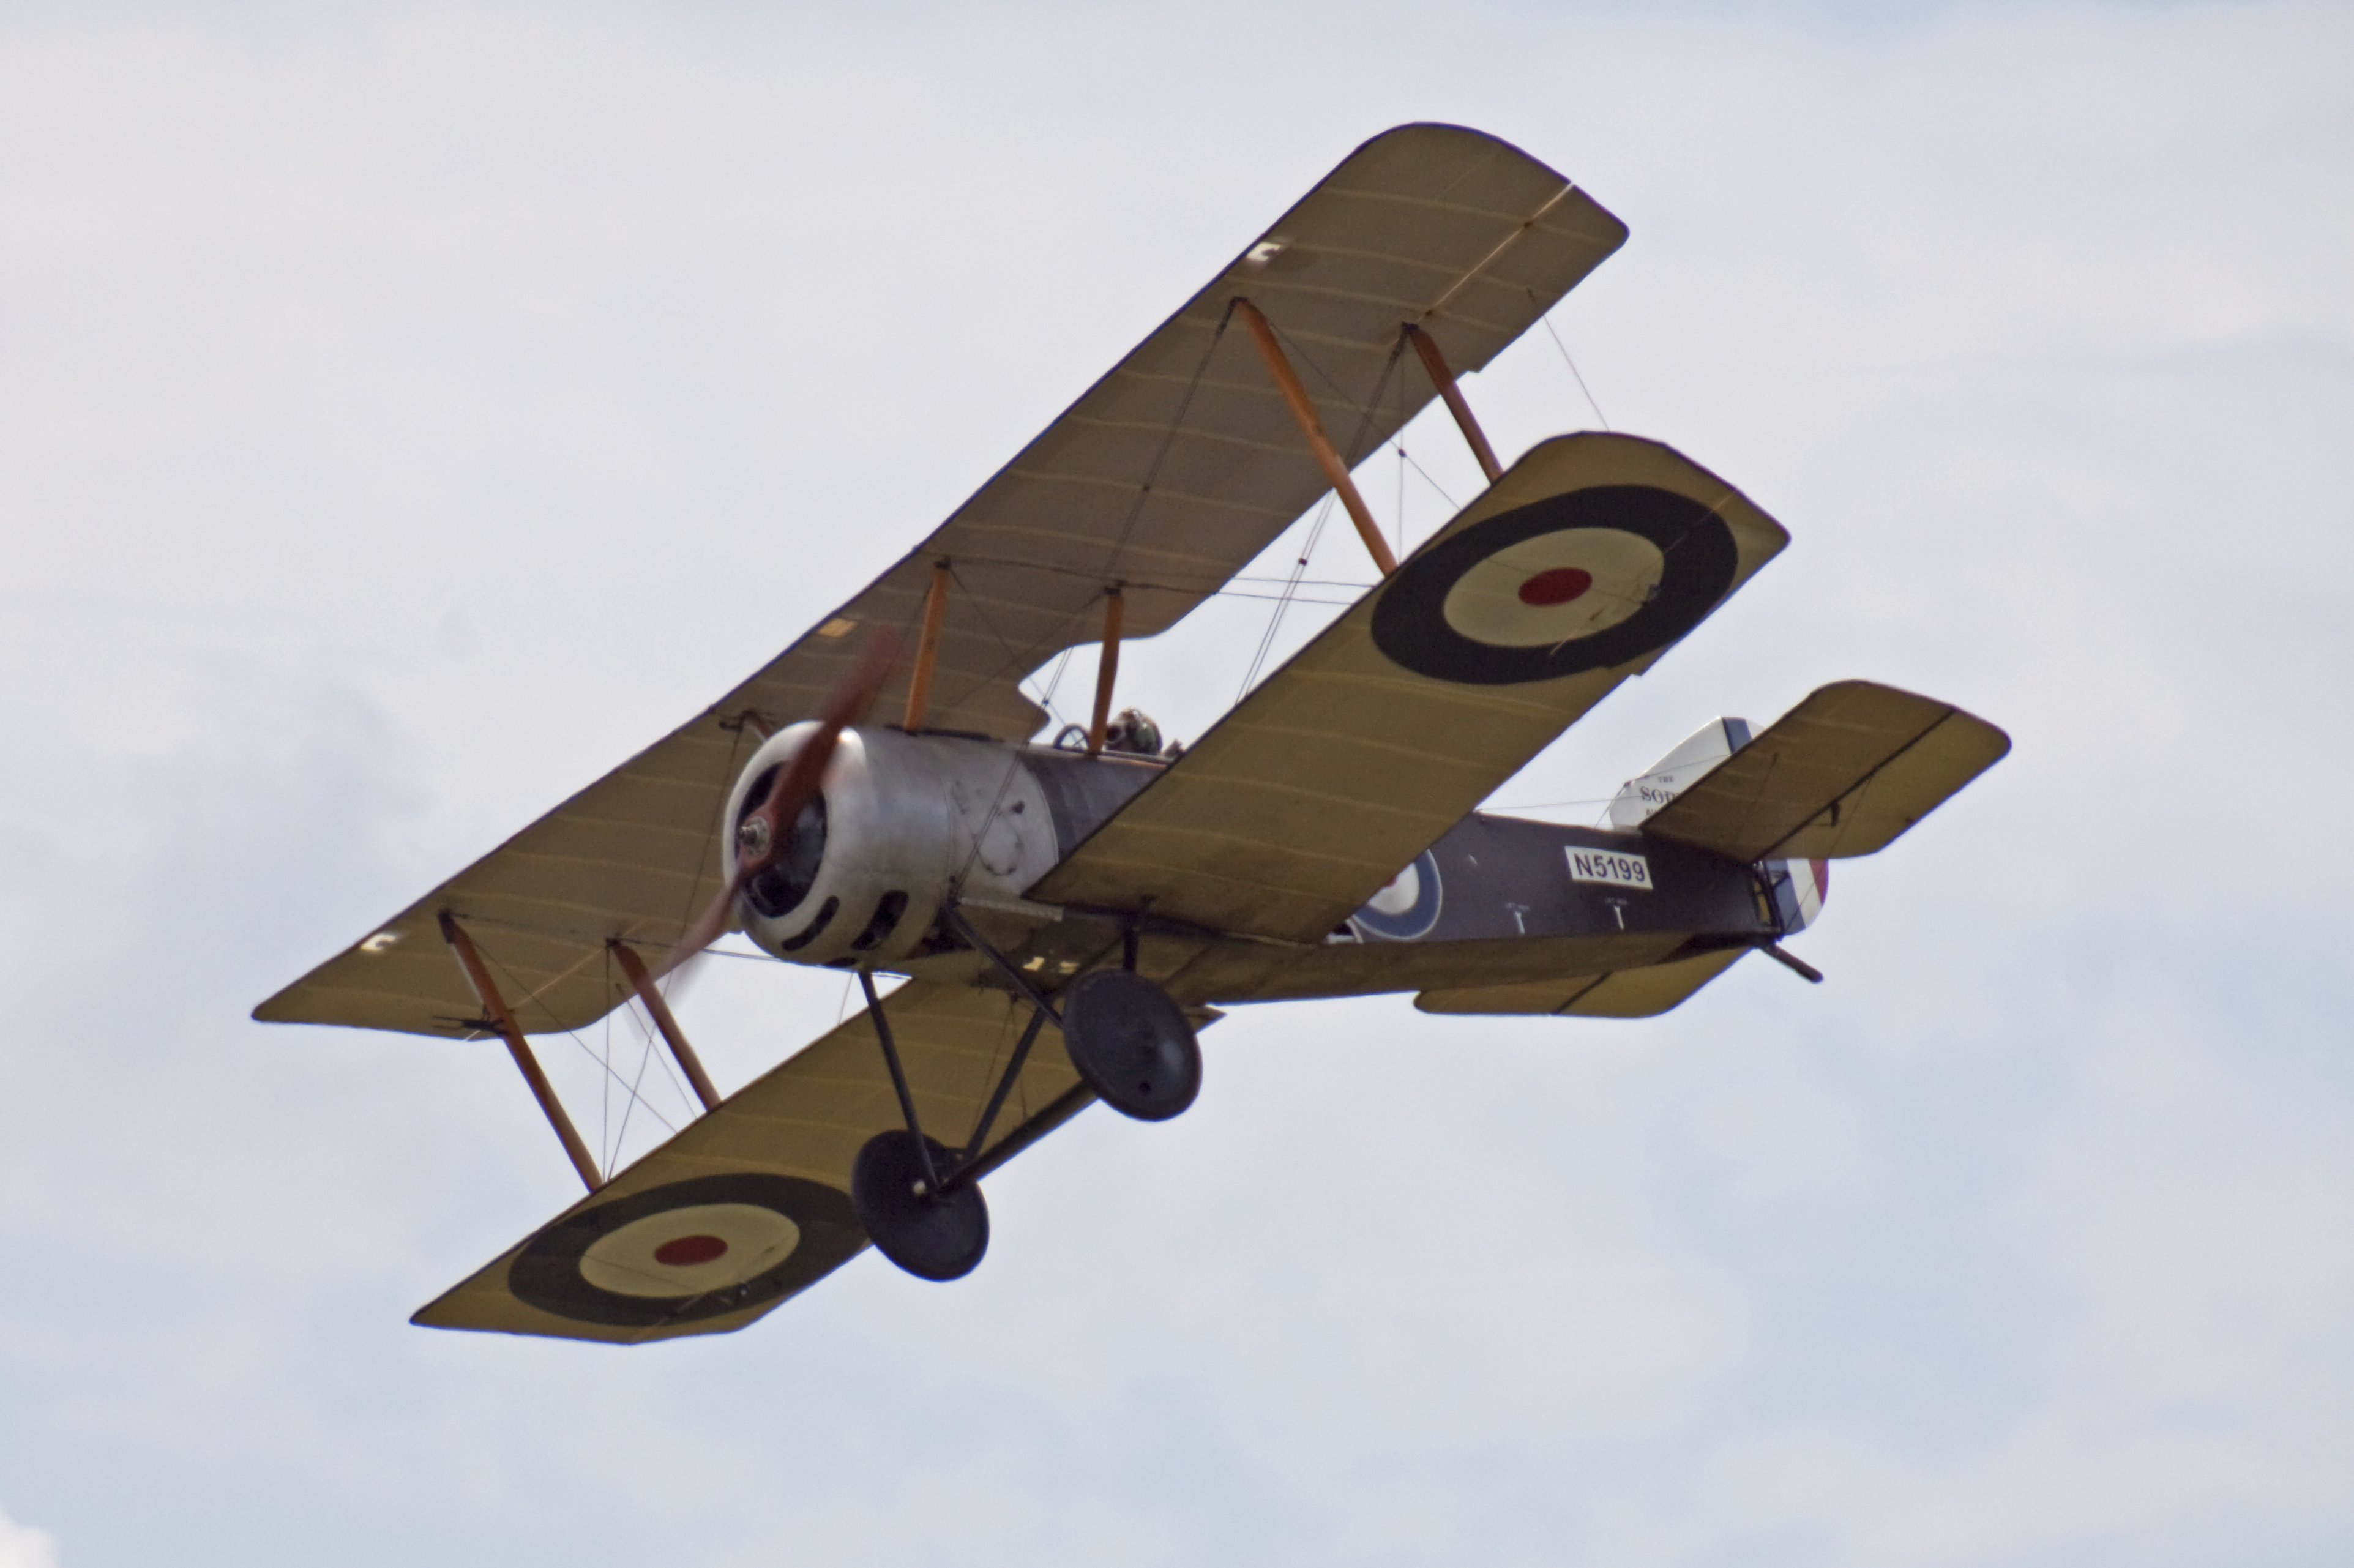 Sopwith Camel The Sopwith